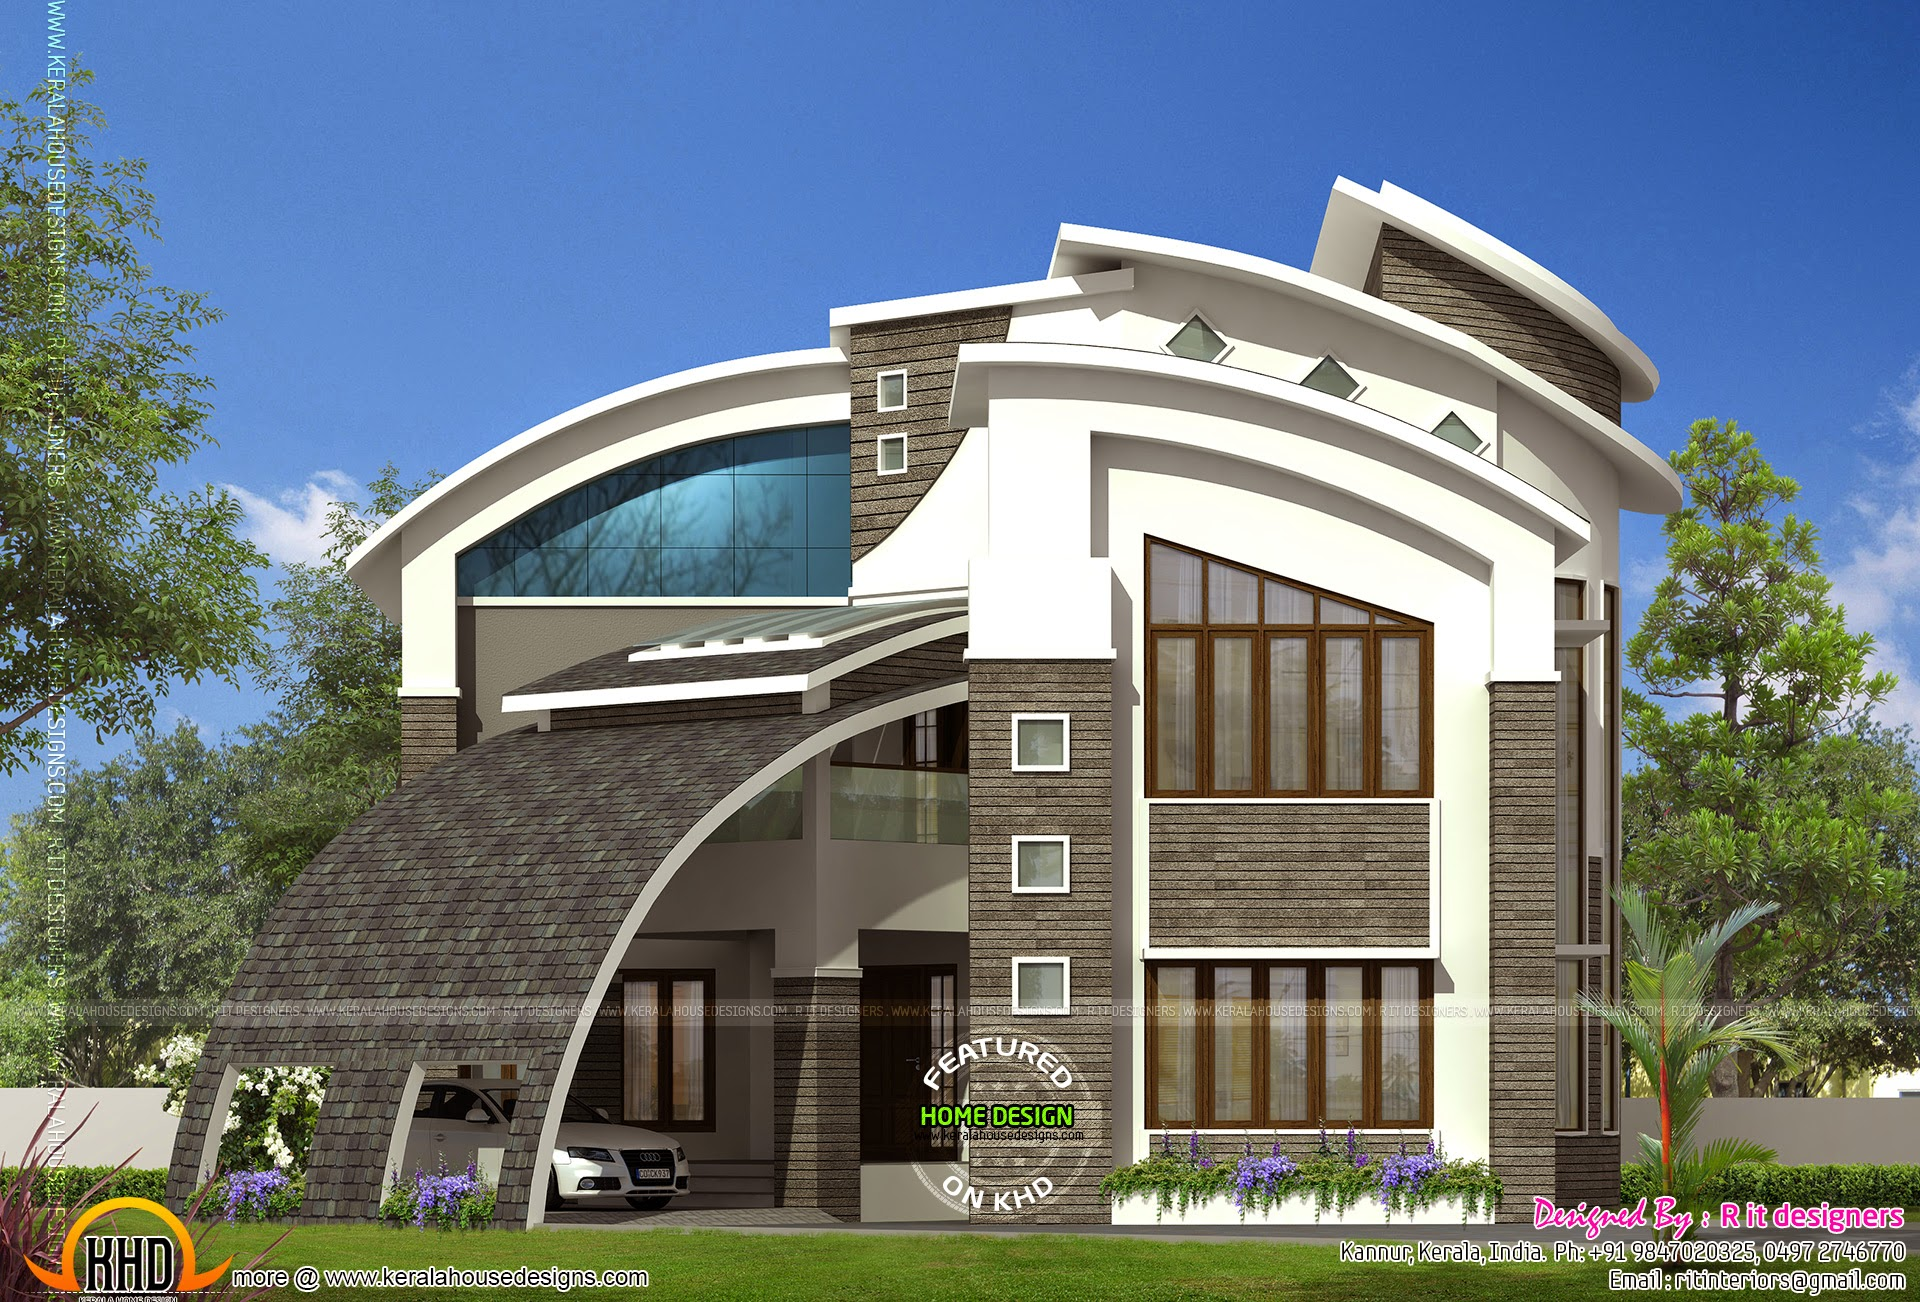 Most modern contemporary house design kerala home design and floor plans - New house design ...